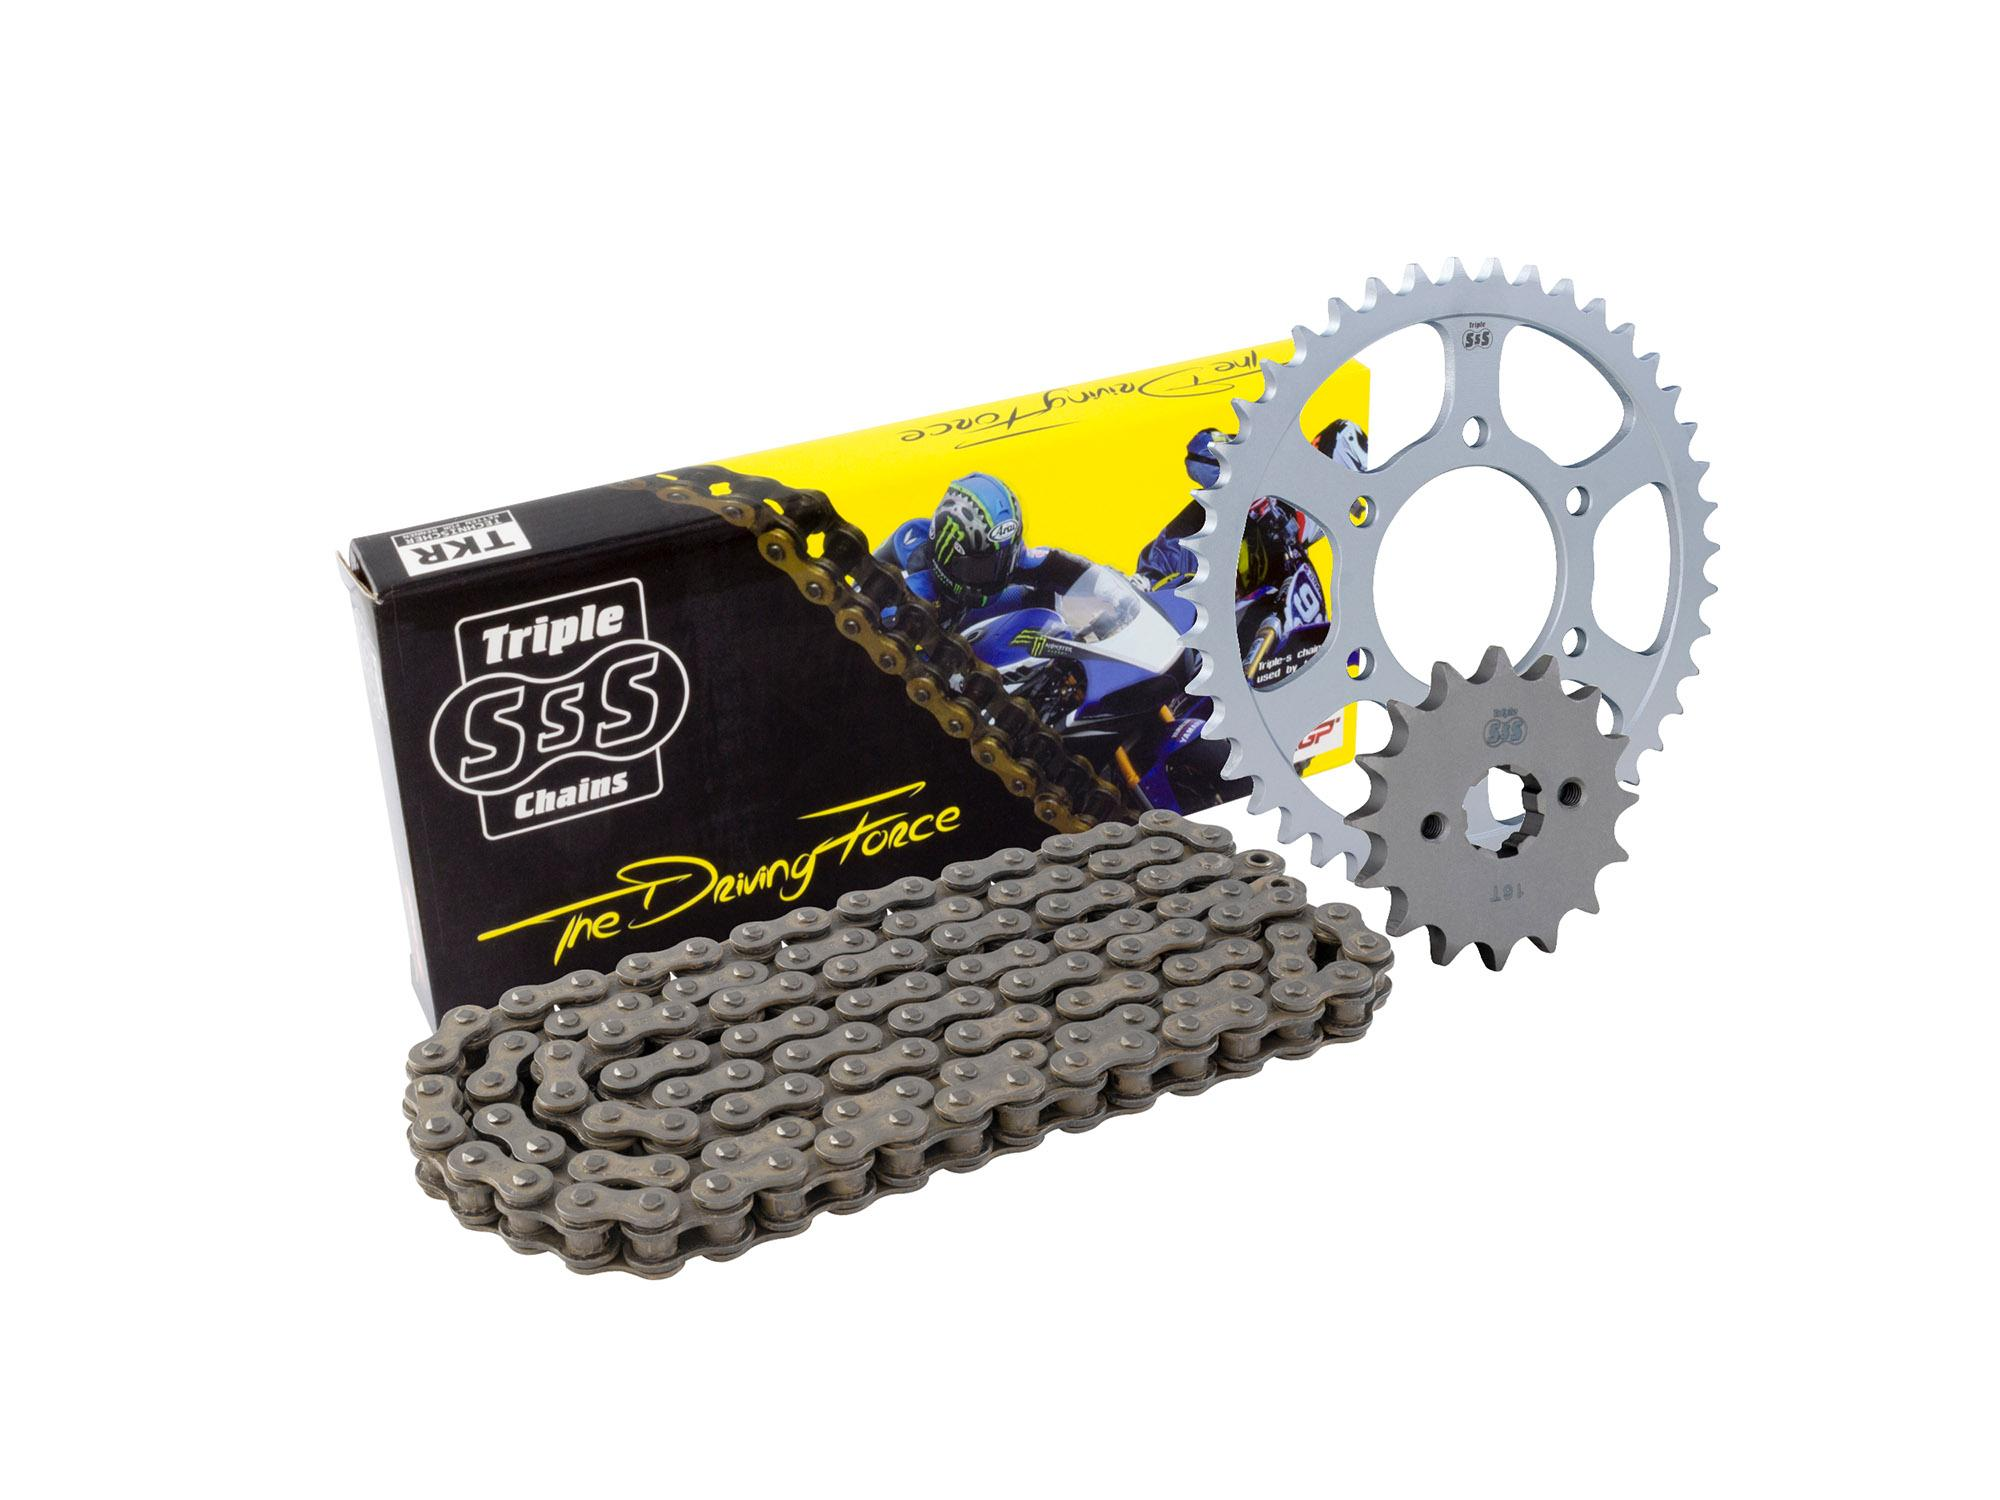 Suzuki GSF1250 SA Bandit Traveller L0 10 Chain & Sprocket Kit: 18T Front, 43T Rear, HD O-Ring Black Chain 530H 120 Link